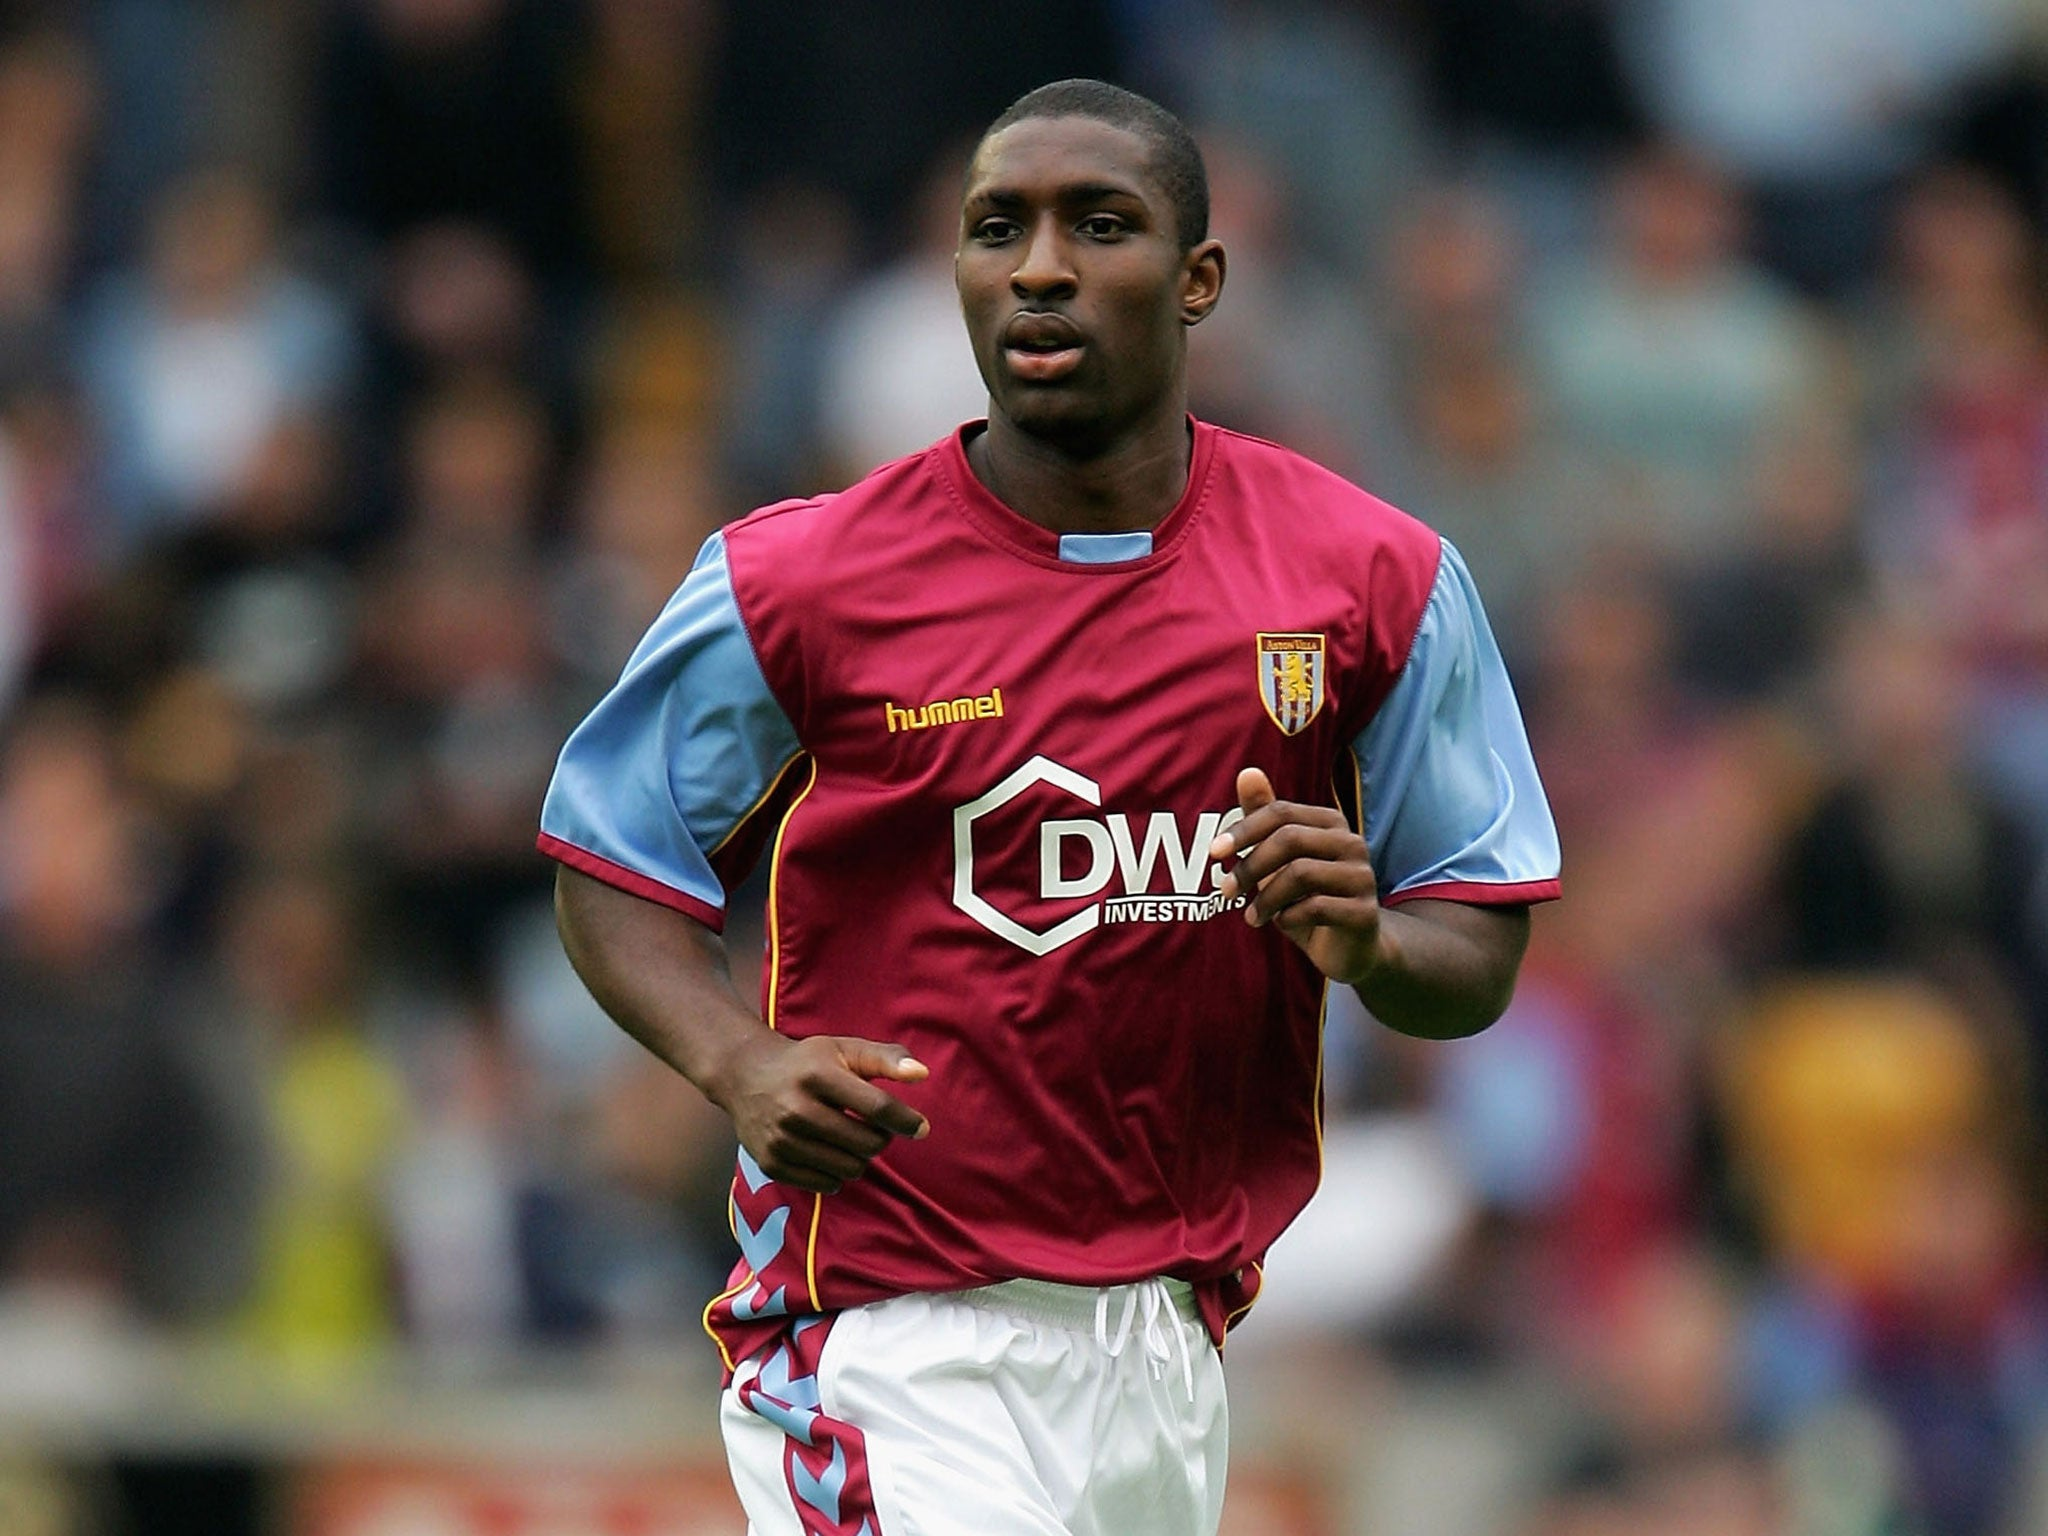 Jlloyd Samuel Dead Former Aston Villa And Bolton Defenders In Car Crash Aged  The Independent